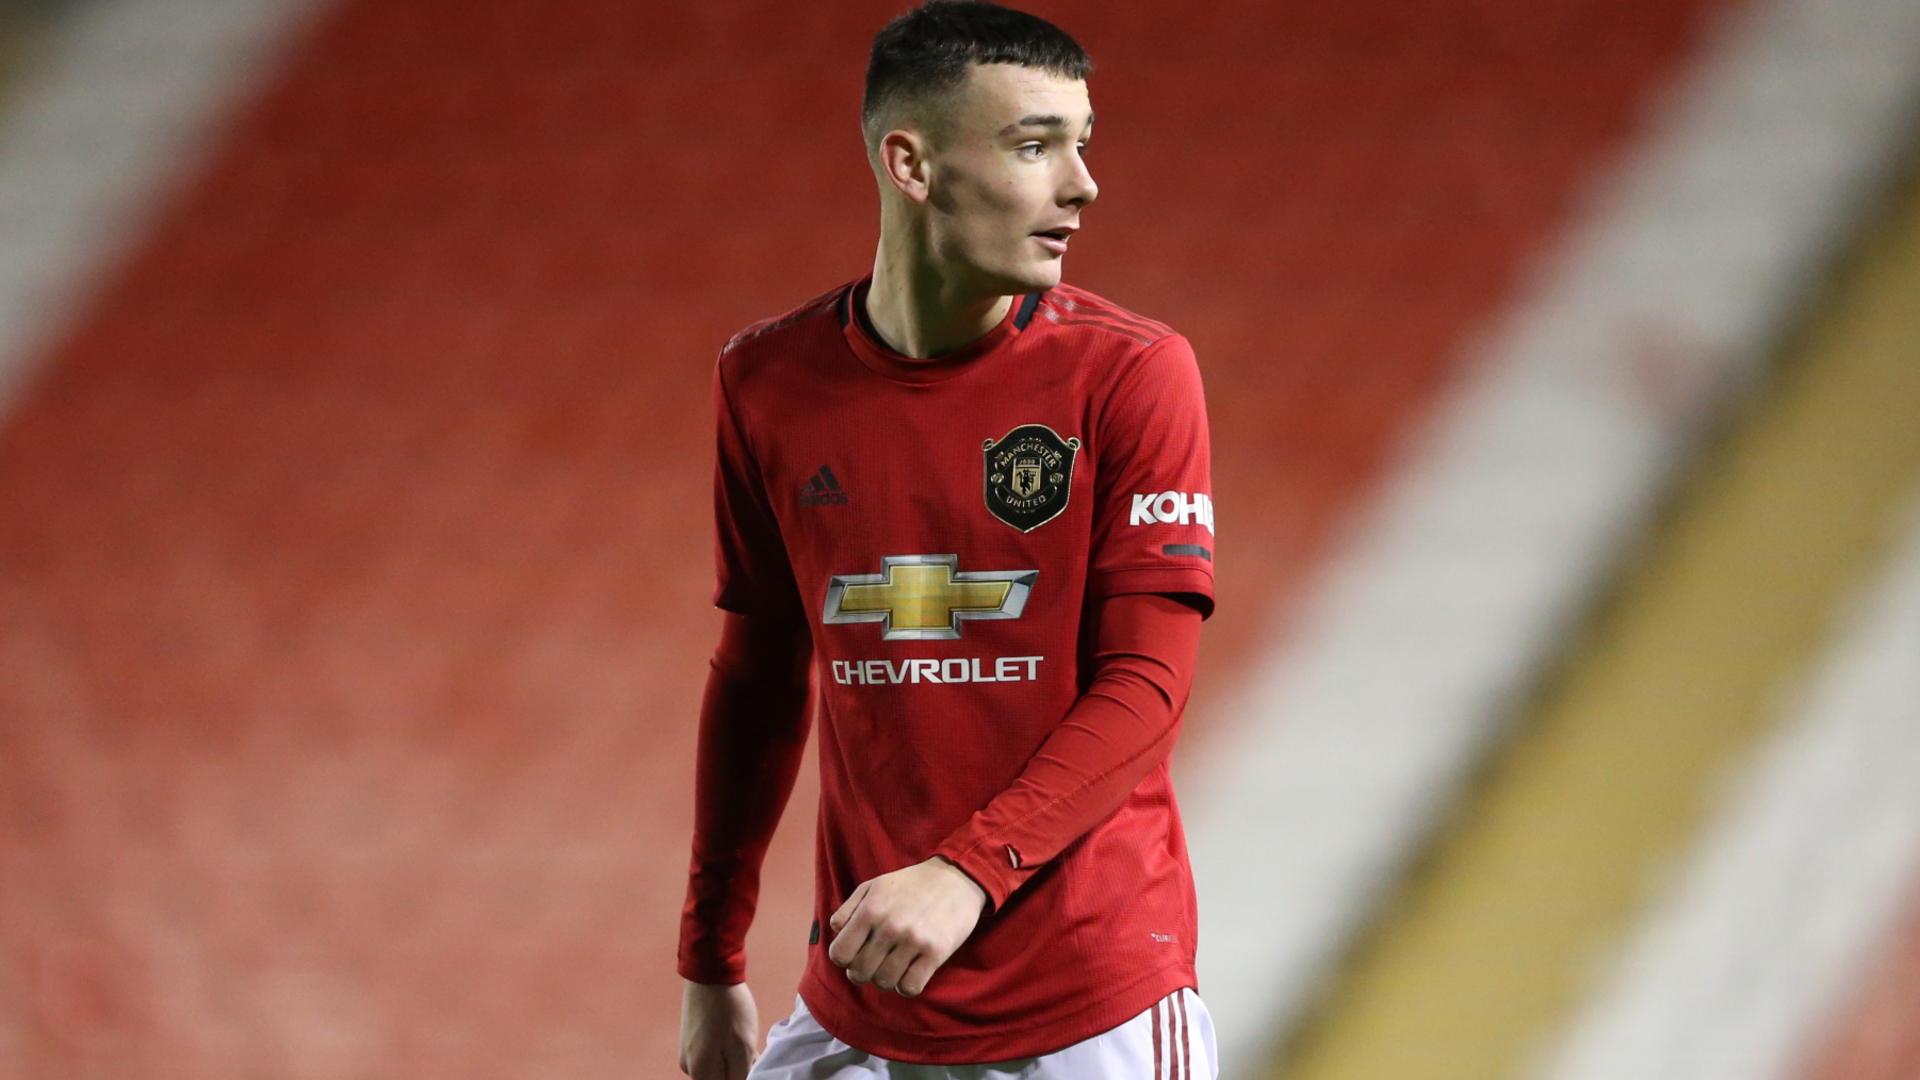 'He's really intelligent and has good passing range' - Giggs backs Man Utd youngster Levitt to have bright career